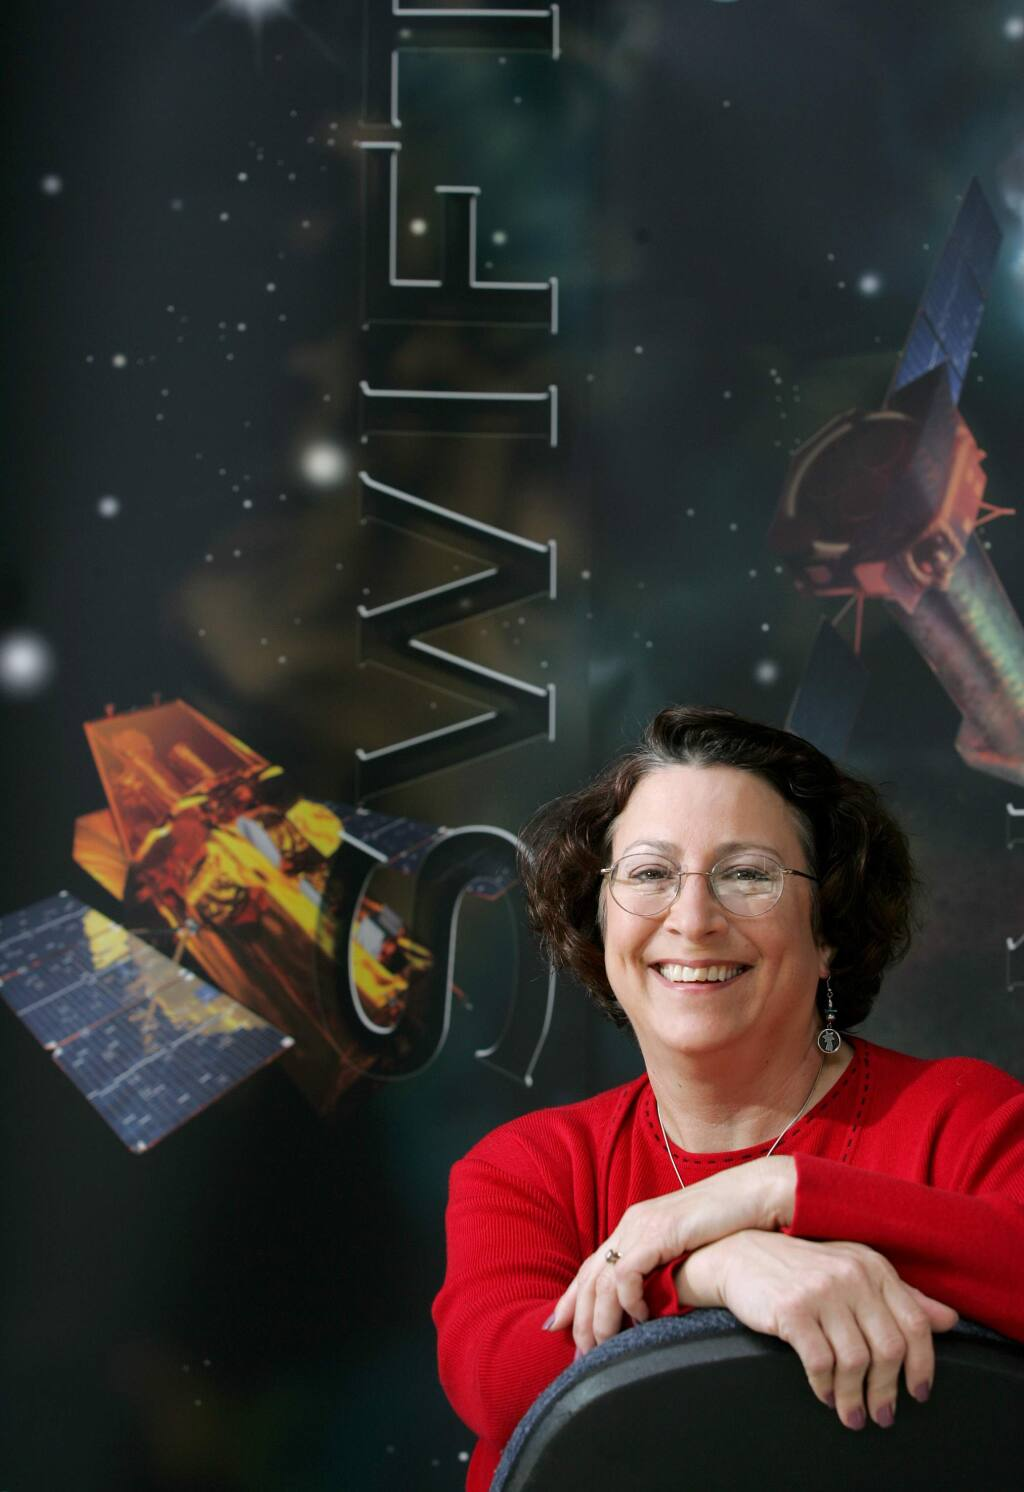 4/17/2005: D1: Sonoma State University professor Lynn Cominsky is an MIT-trained astrophysicist and a NASA adviser. She is program director for a NASA program that aims to explain the science of the universe to students, particularly in connection with the gamma-ray detecting Swift satellite, launched last year.PC: Photo by Christopher Chung/ The Press Democrat SSU Professor Lynn Cominsky is the program director for NASA's Edication Public Outreach program.